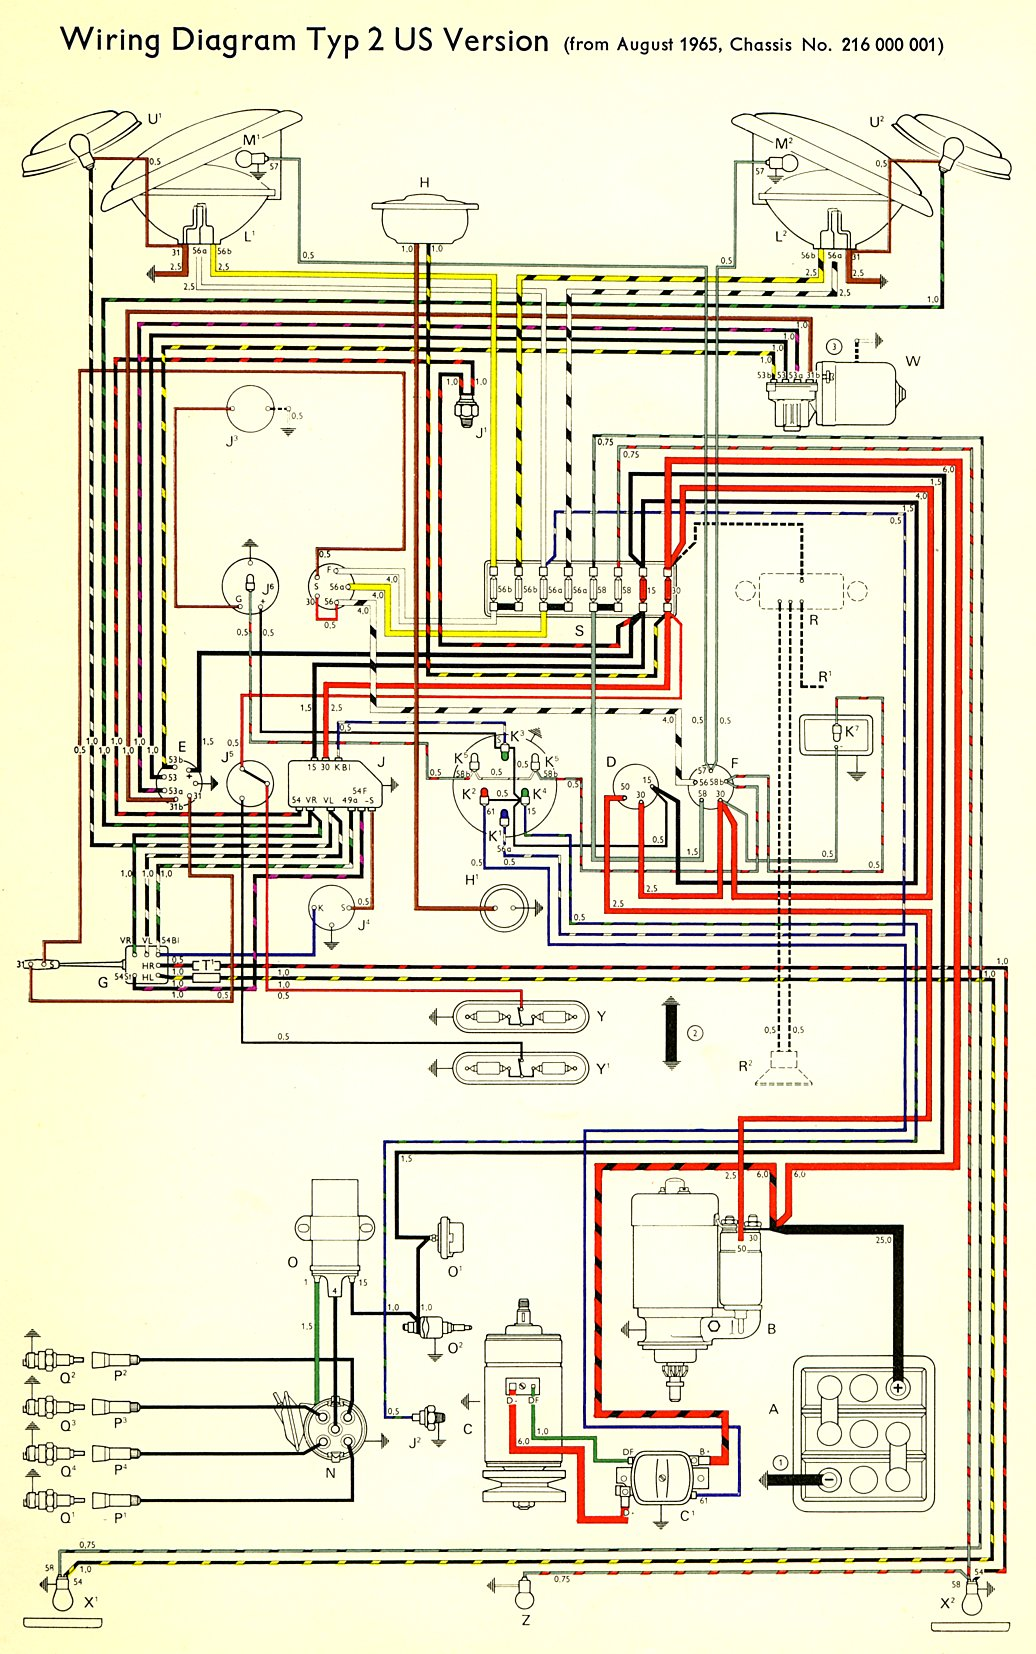 1966 bus wiring diagram usa on 1967 vw beetle engine diagram